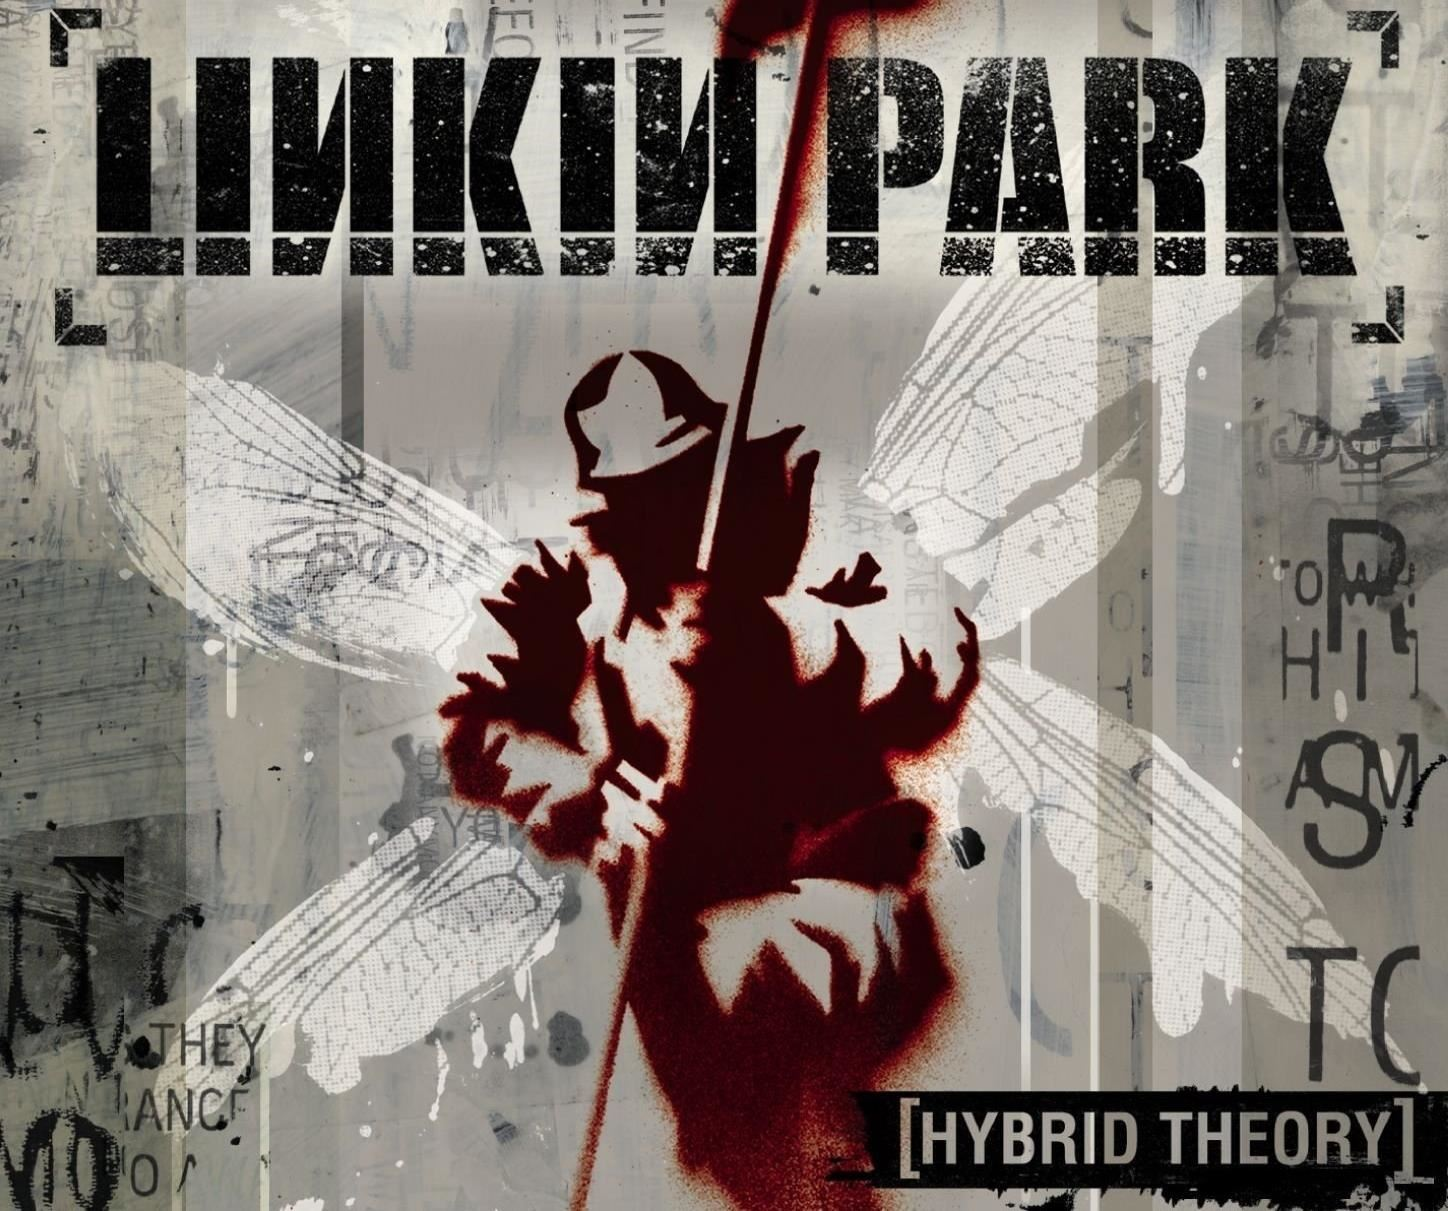 Today Only: Linkin Park's 'Hybrid Theory' Album Free on Google Play